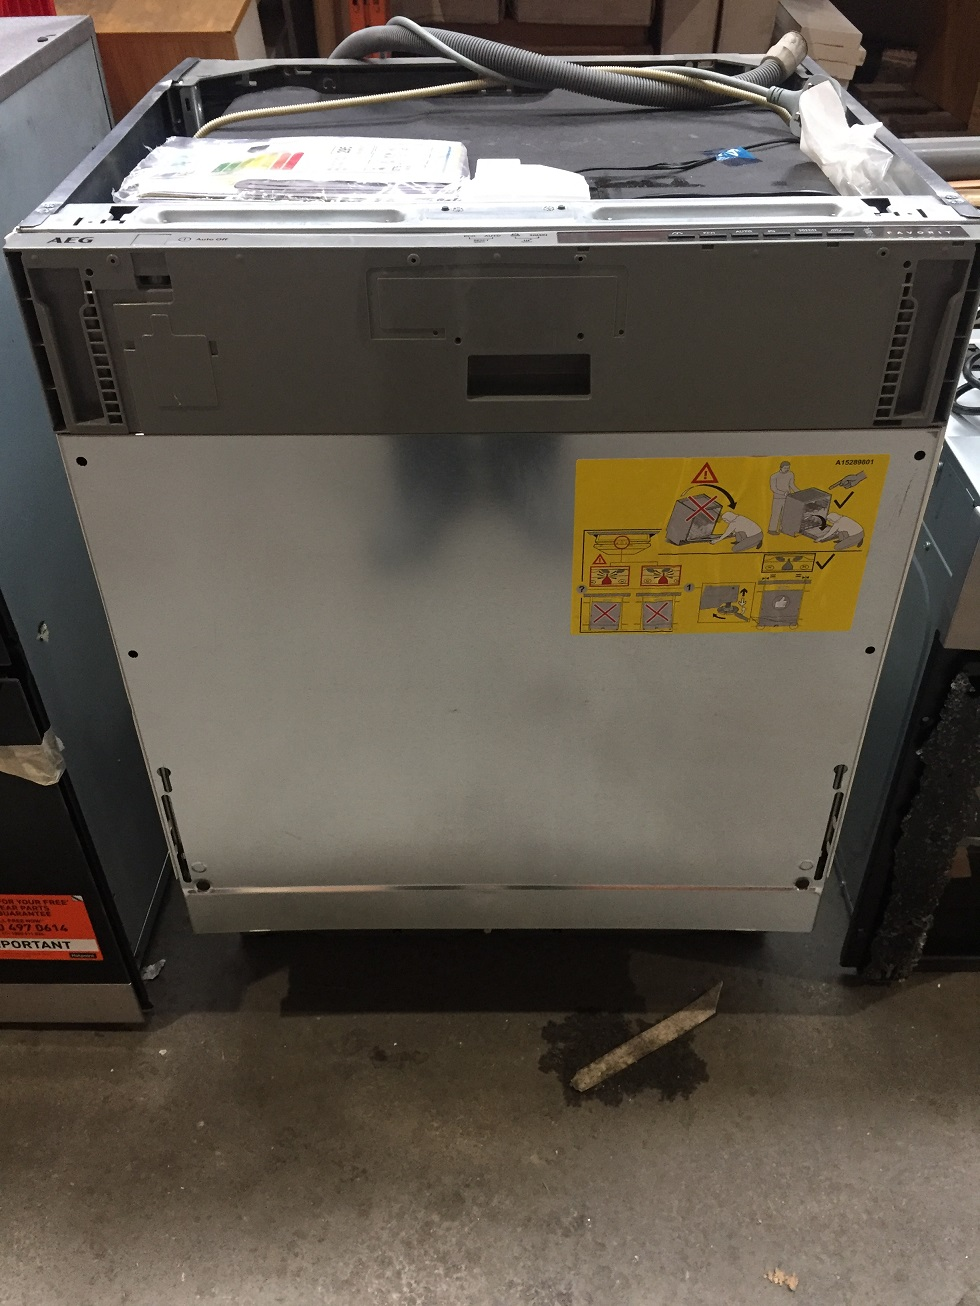 Lot 1 - 1 UNPACKAGED GRADE B UNTESTED AEG FAVORIT INTEGRATED DISHWASHER IN SILVER / RRP £347.00 (VIEWING